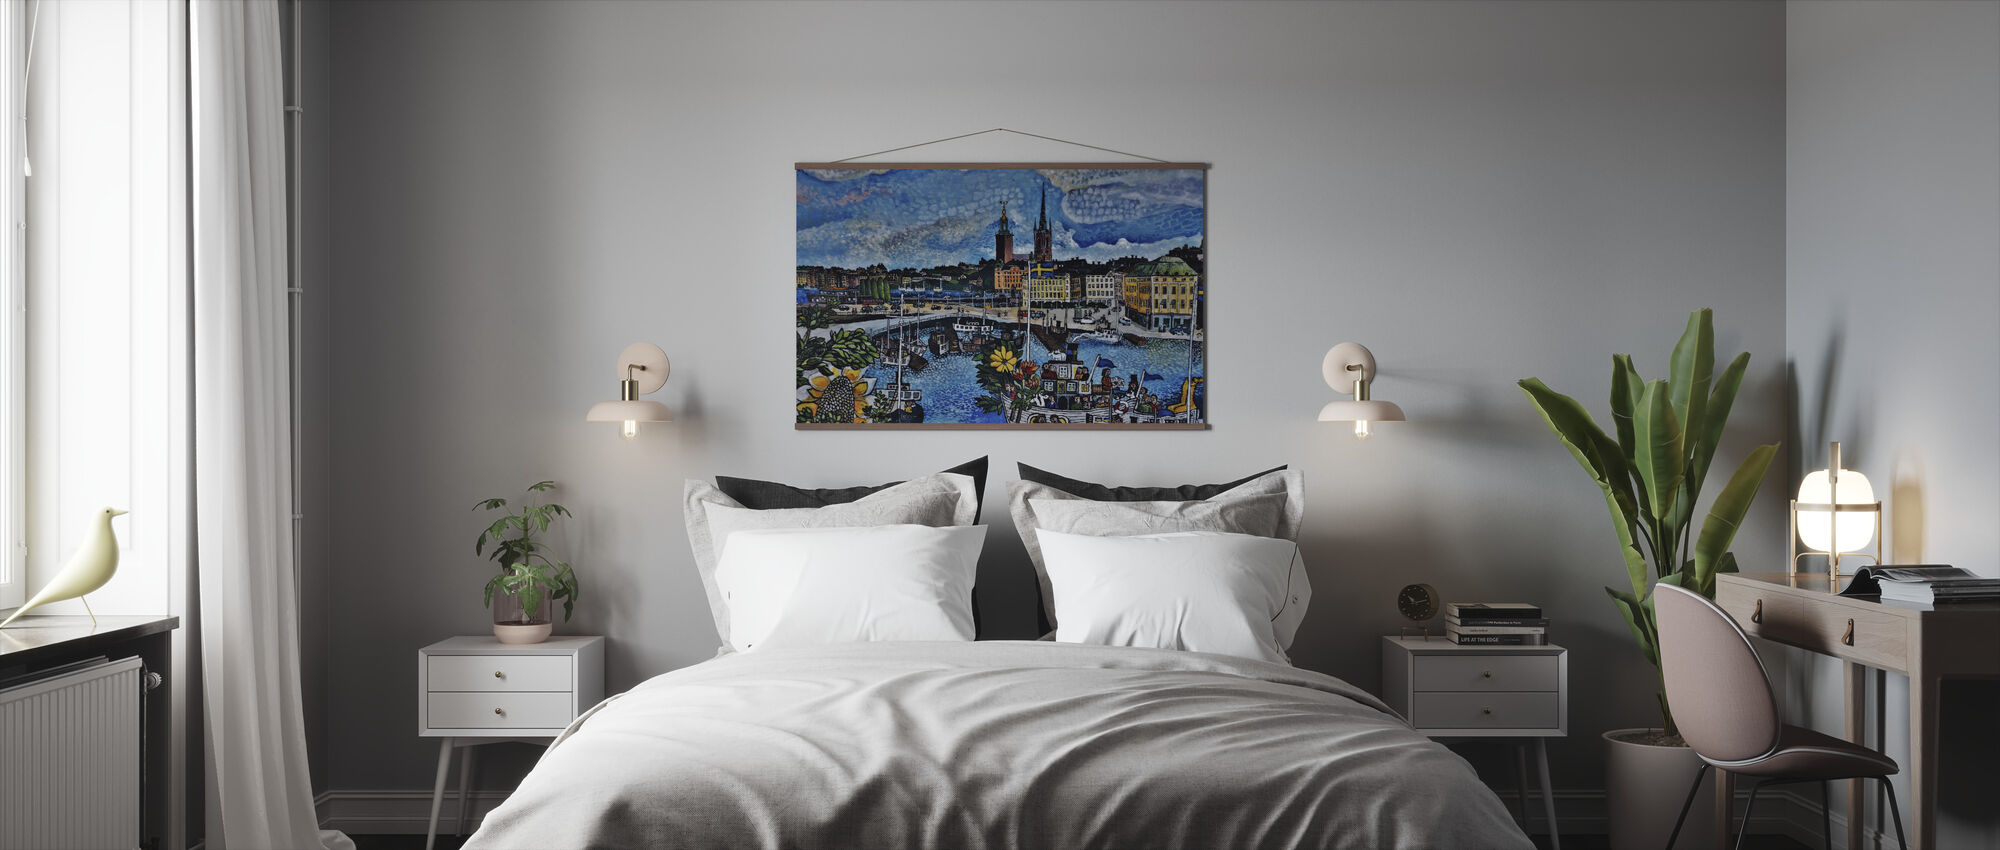 City Pier Painting - Poster - Bedroom